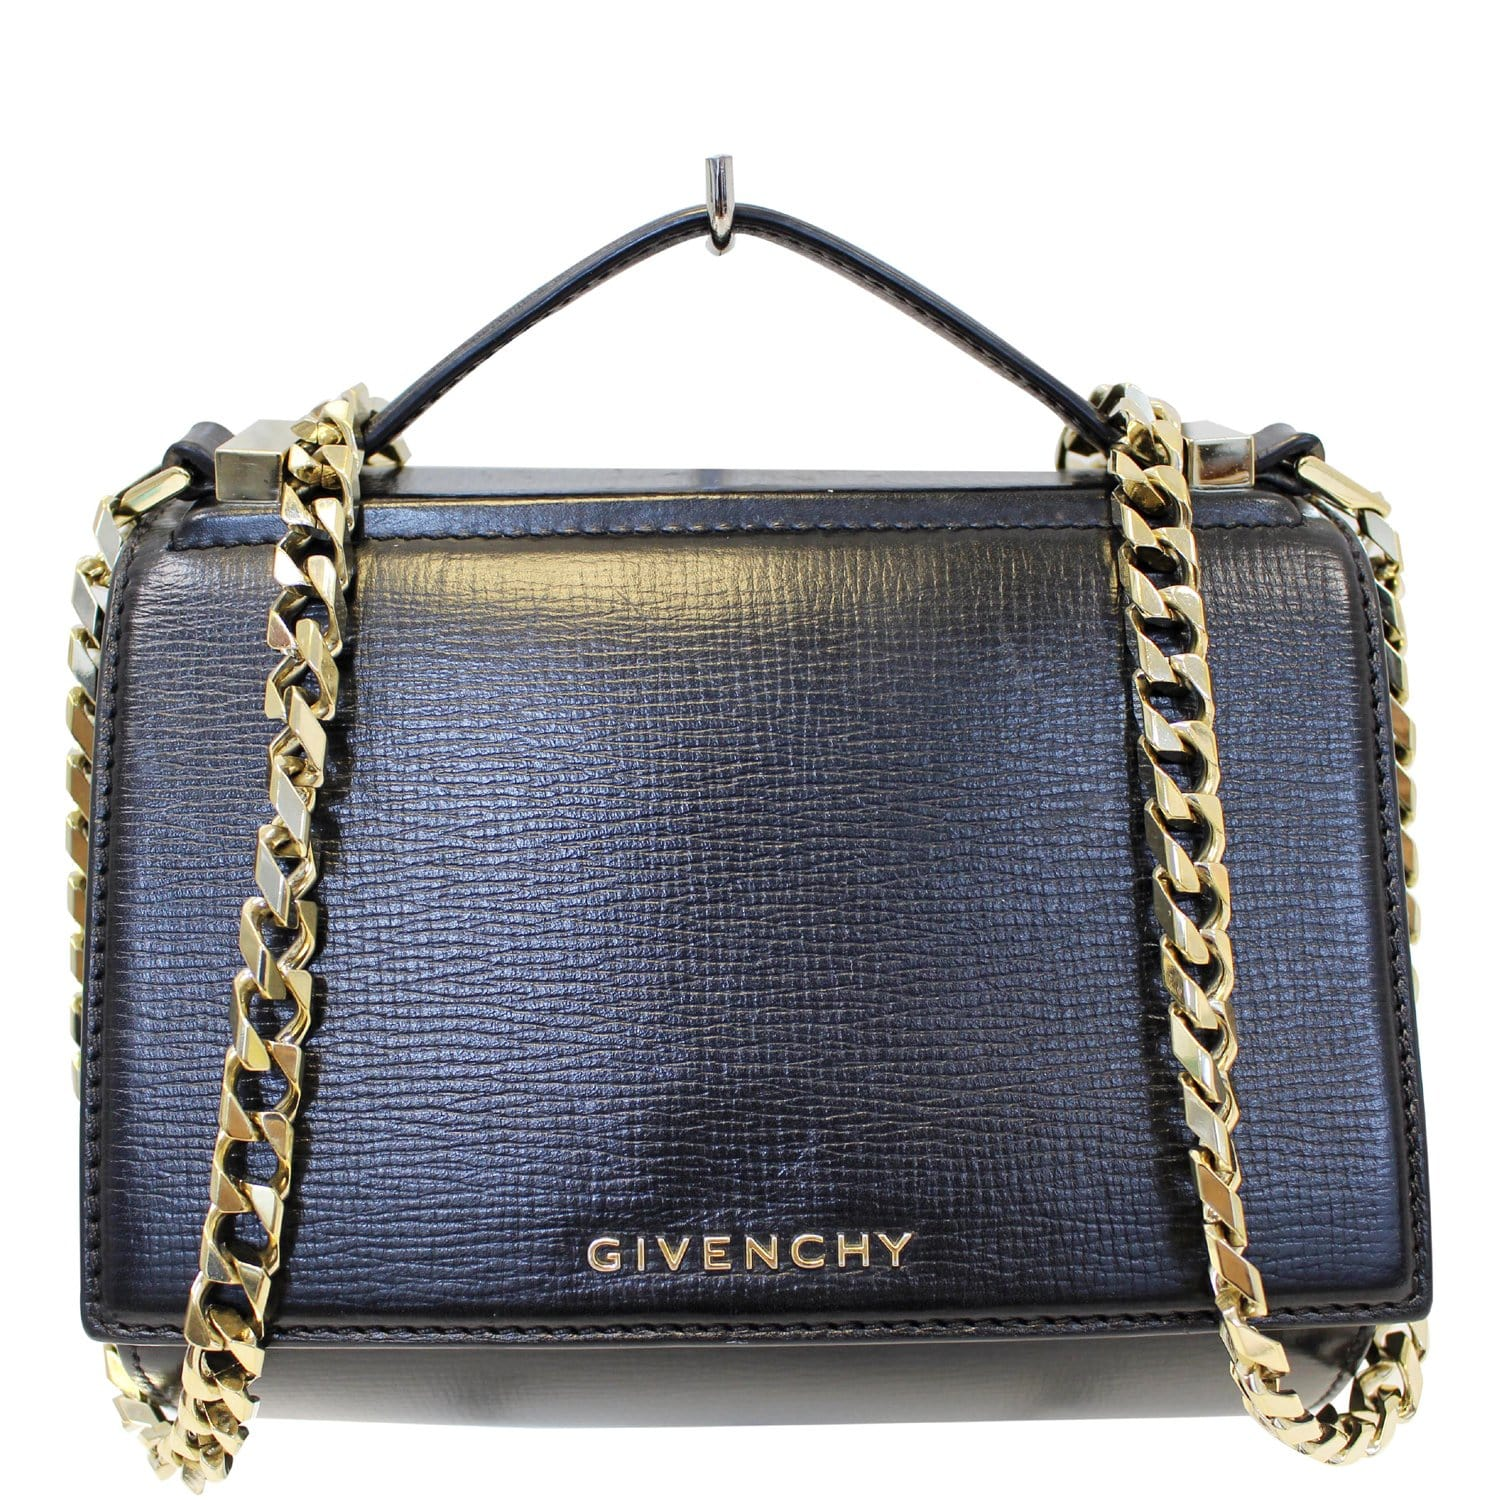 25659c4918 GIVENCHY Mini Pandora Box Calfskin Leather Chain Crossbody Bag Black-US